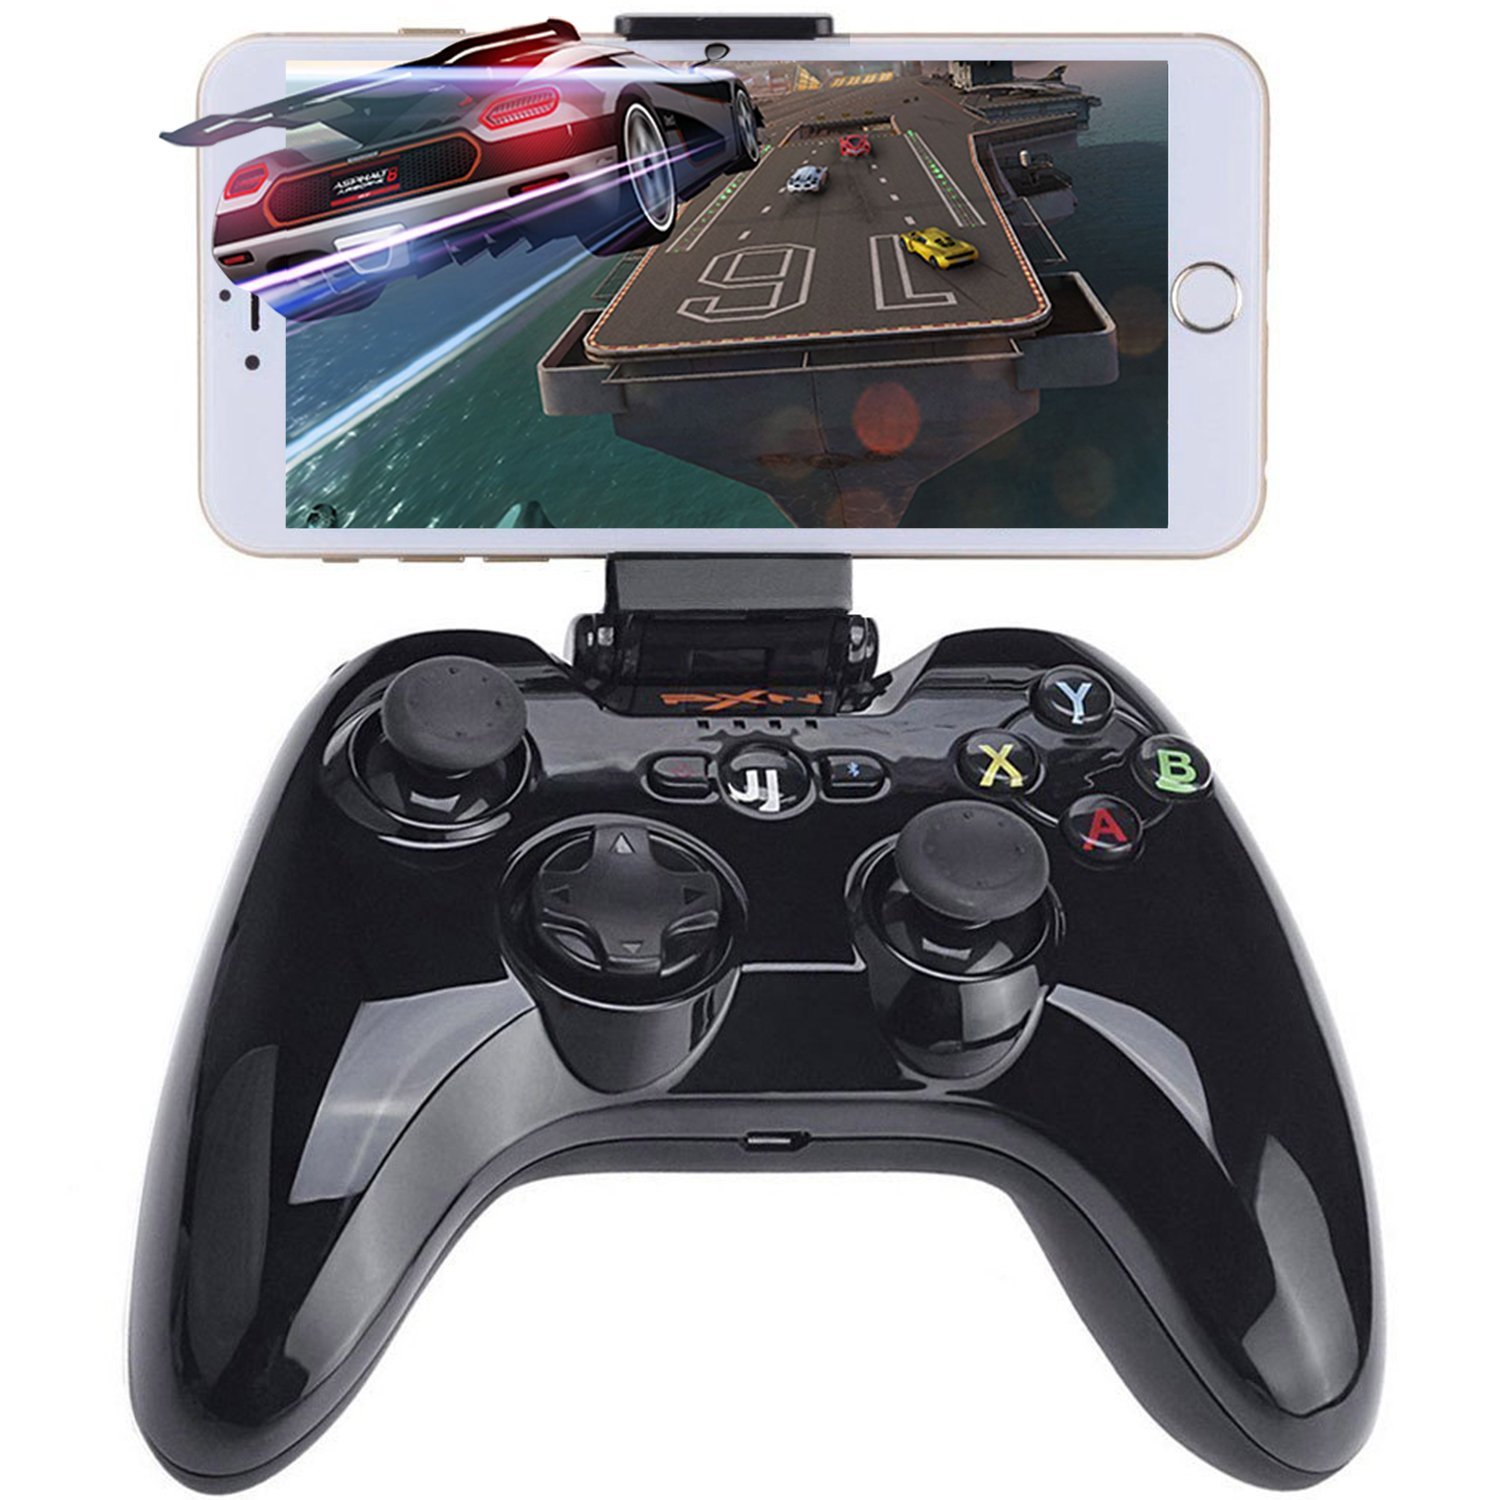 Apple Bluetooth Gaming Controller, MFi Certified iOS Wireless Controller Gamepad Joystick with Clamp Holder for iPhone X, 8 Plus, 8, 7 Plus, 7 6S 6 5S 5, iPad Pro Air Mini, Apple TV, iPod – Black